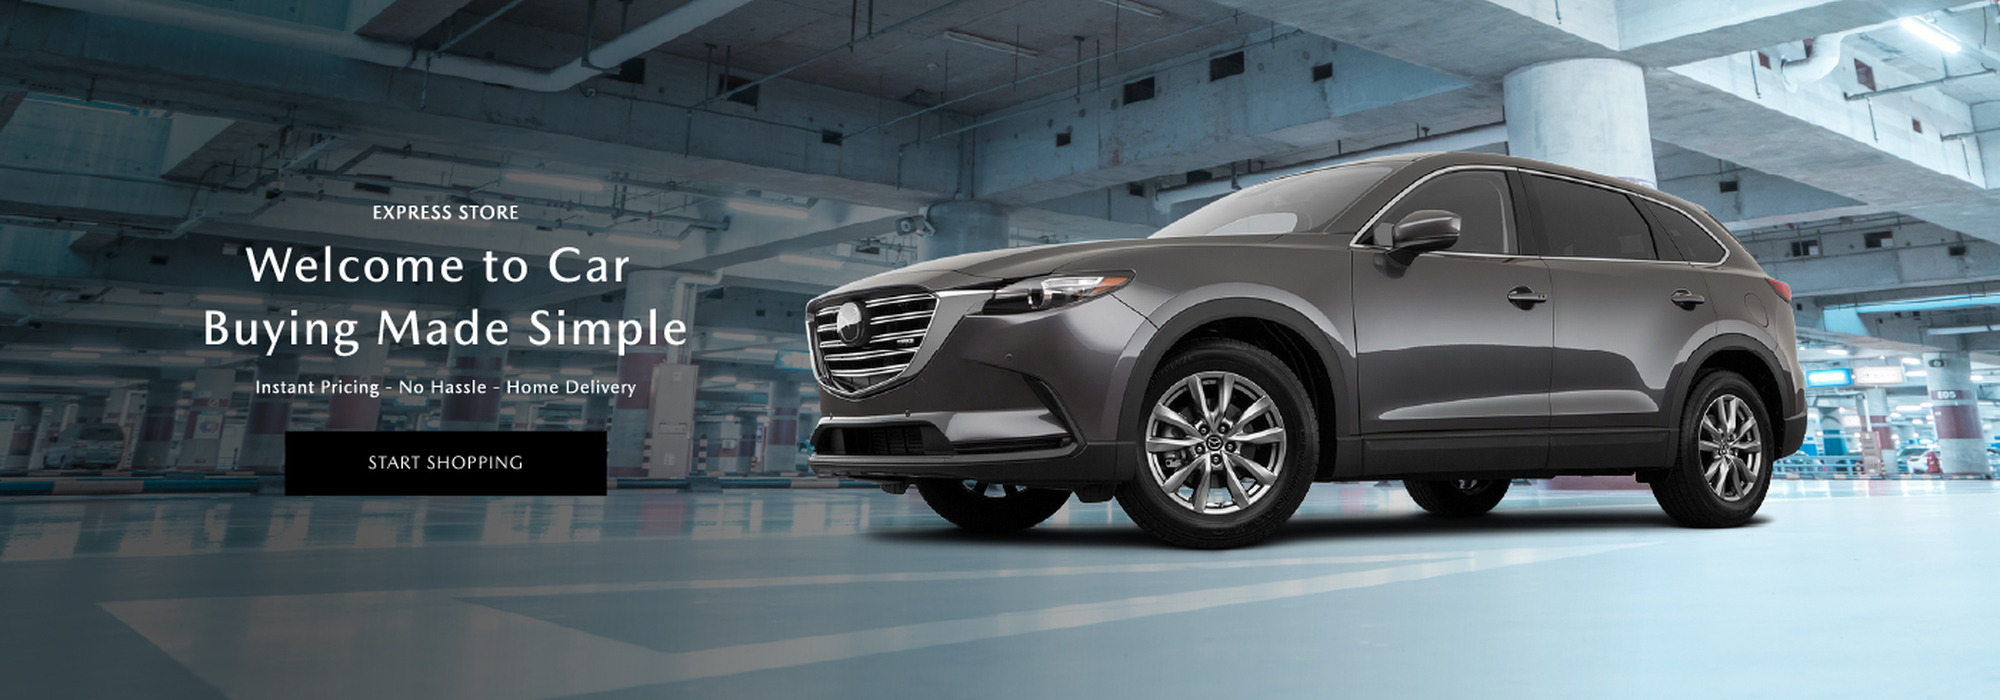 Wantagh Mazda's Express Online Store